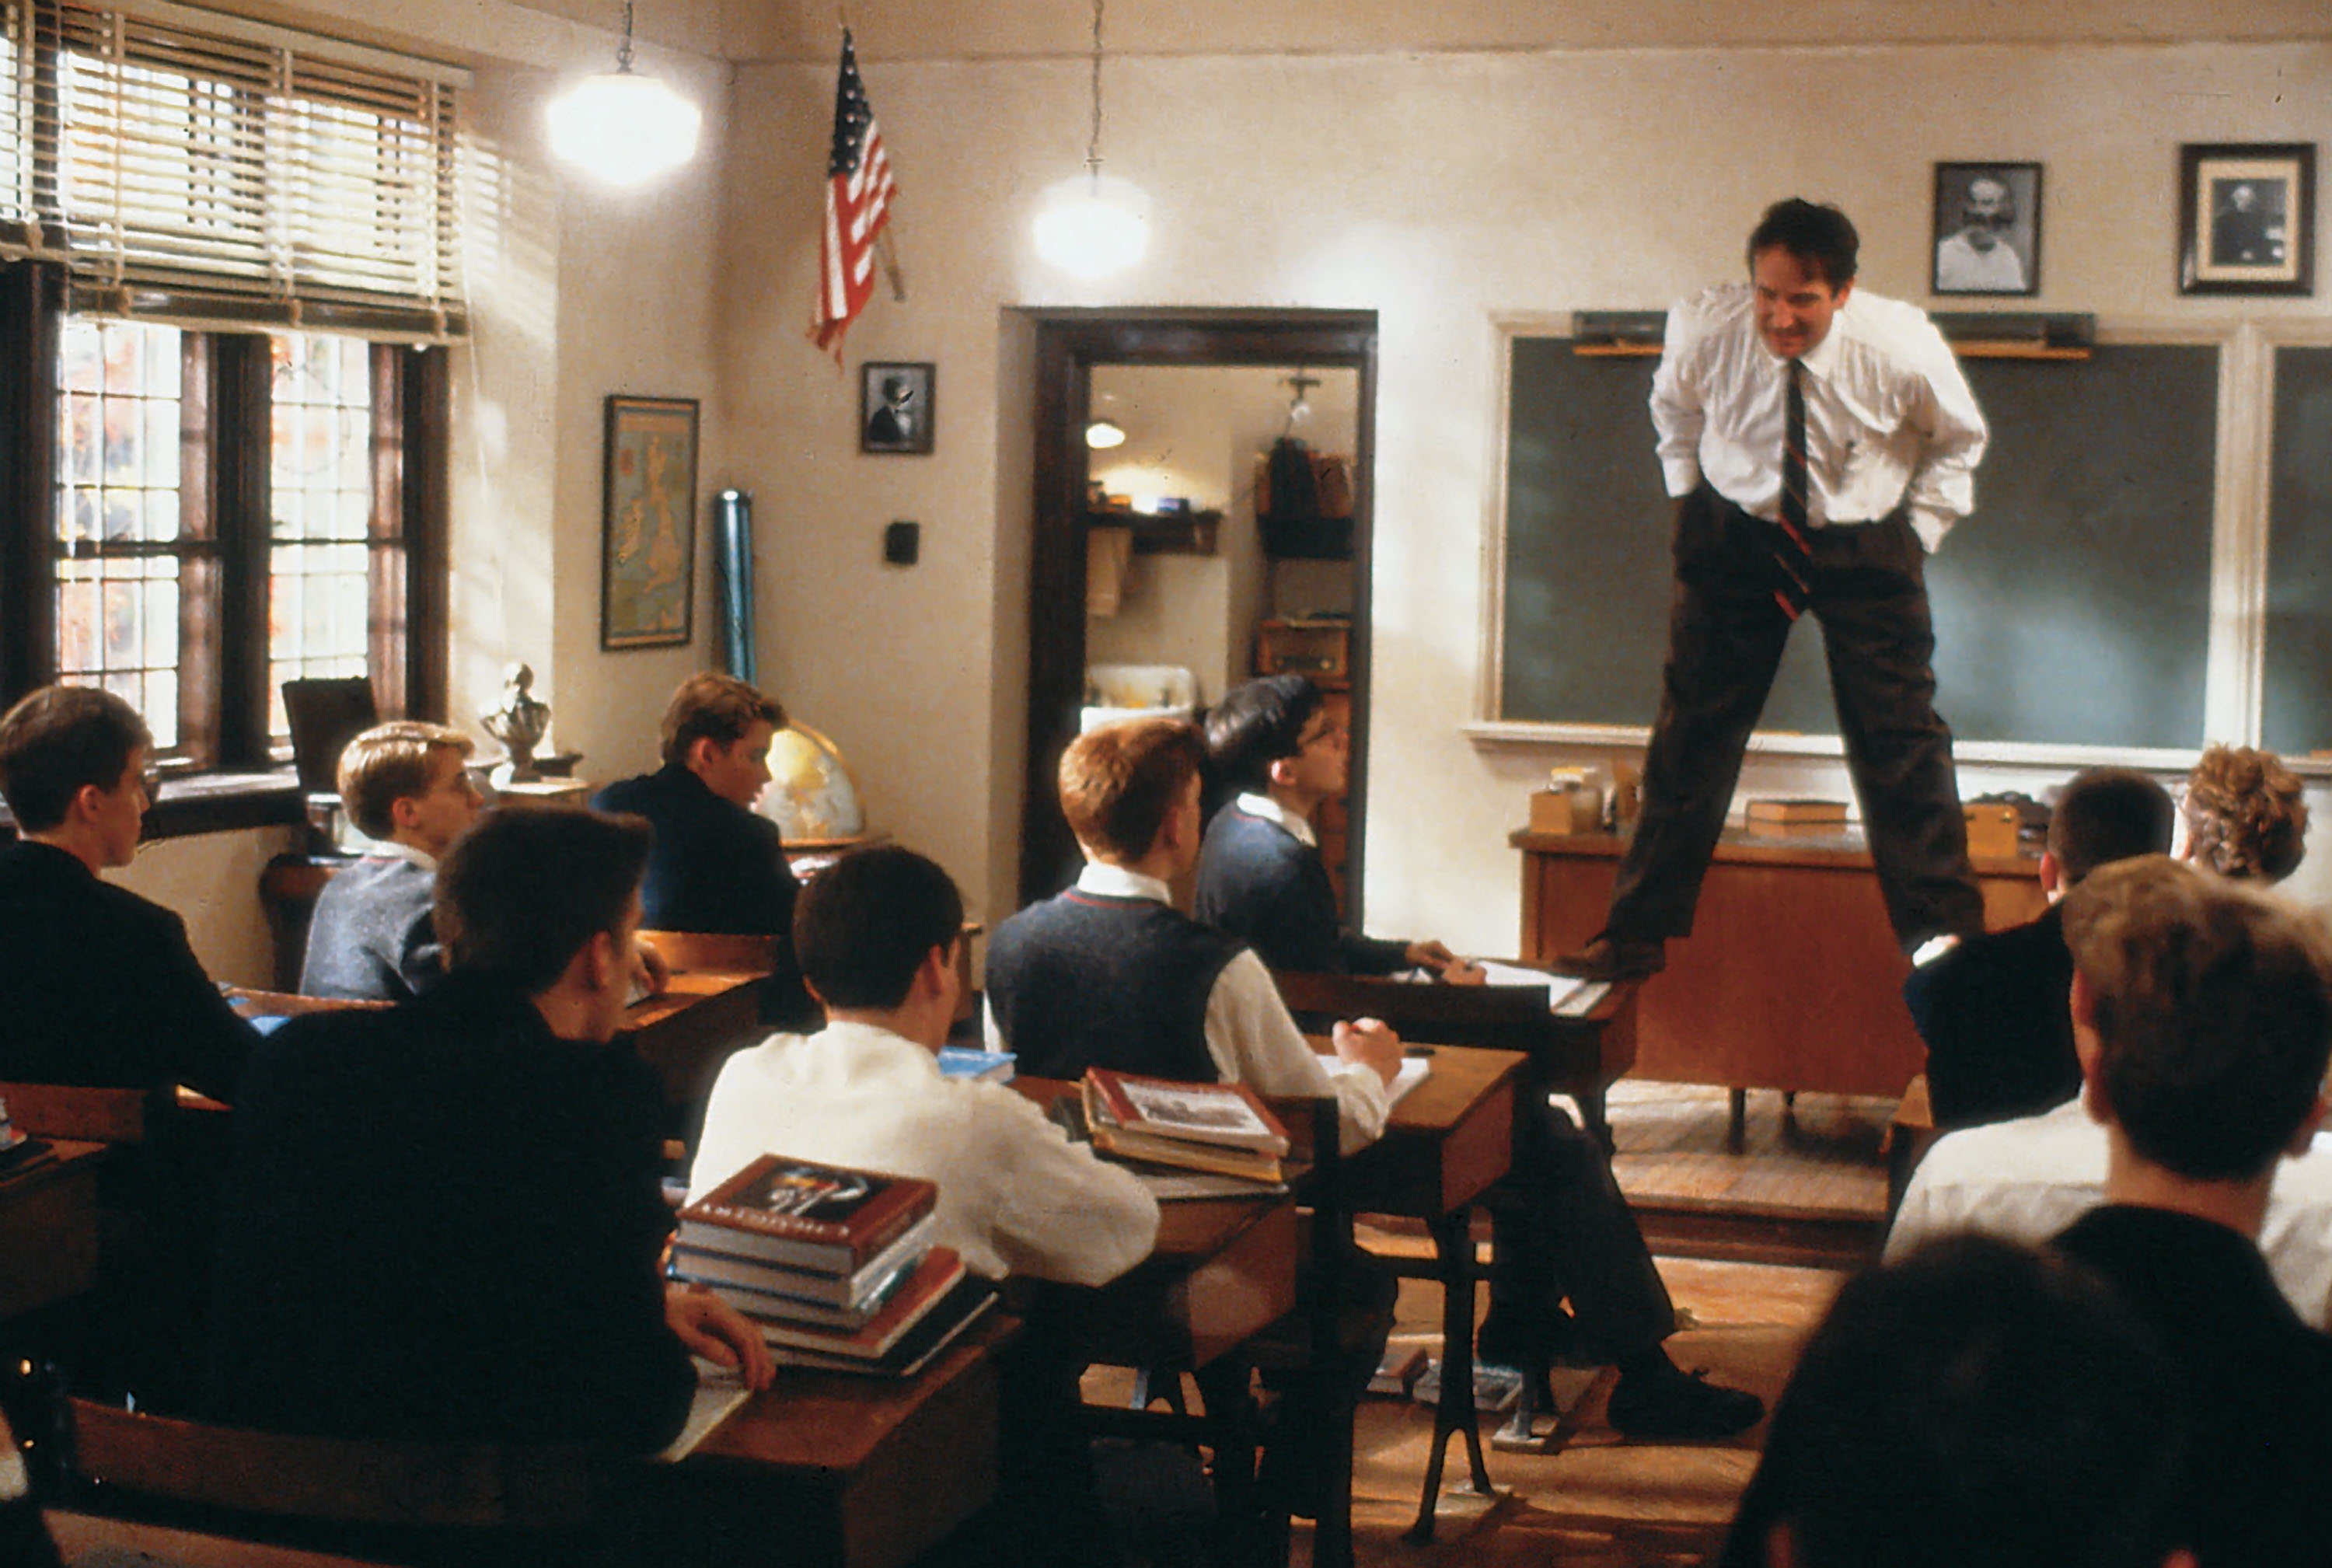 dead poets society scene where robin williams stands on desks in classroom